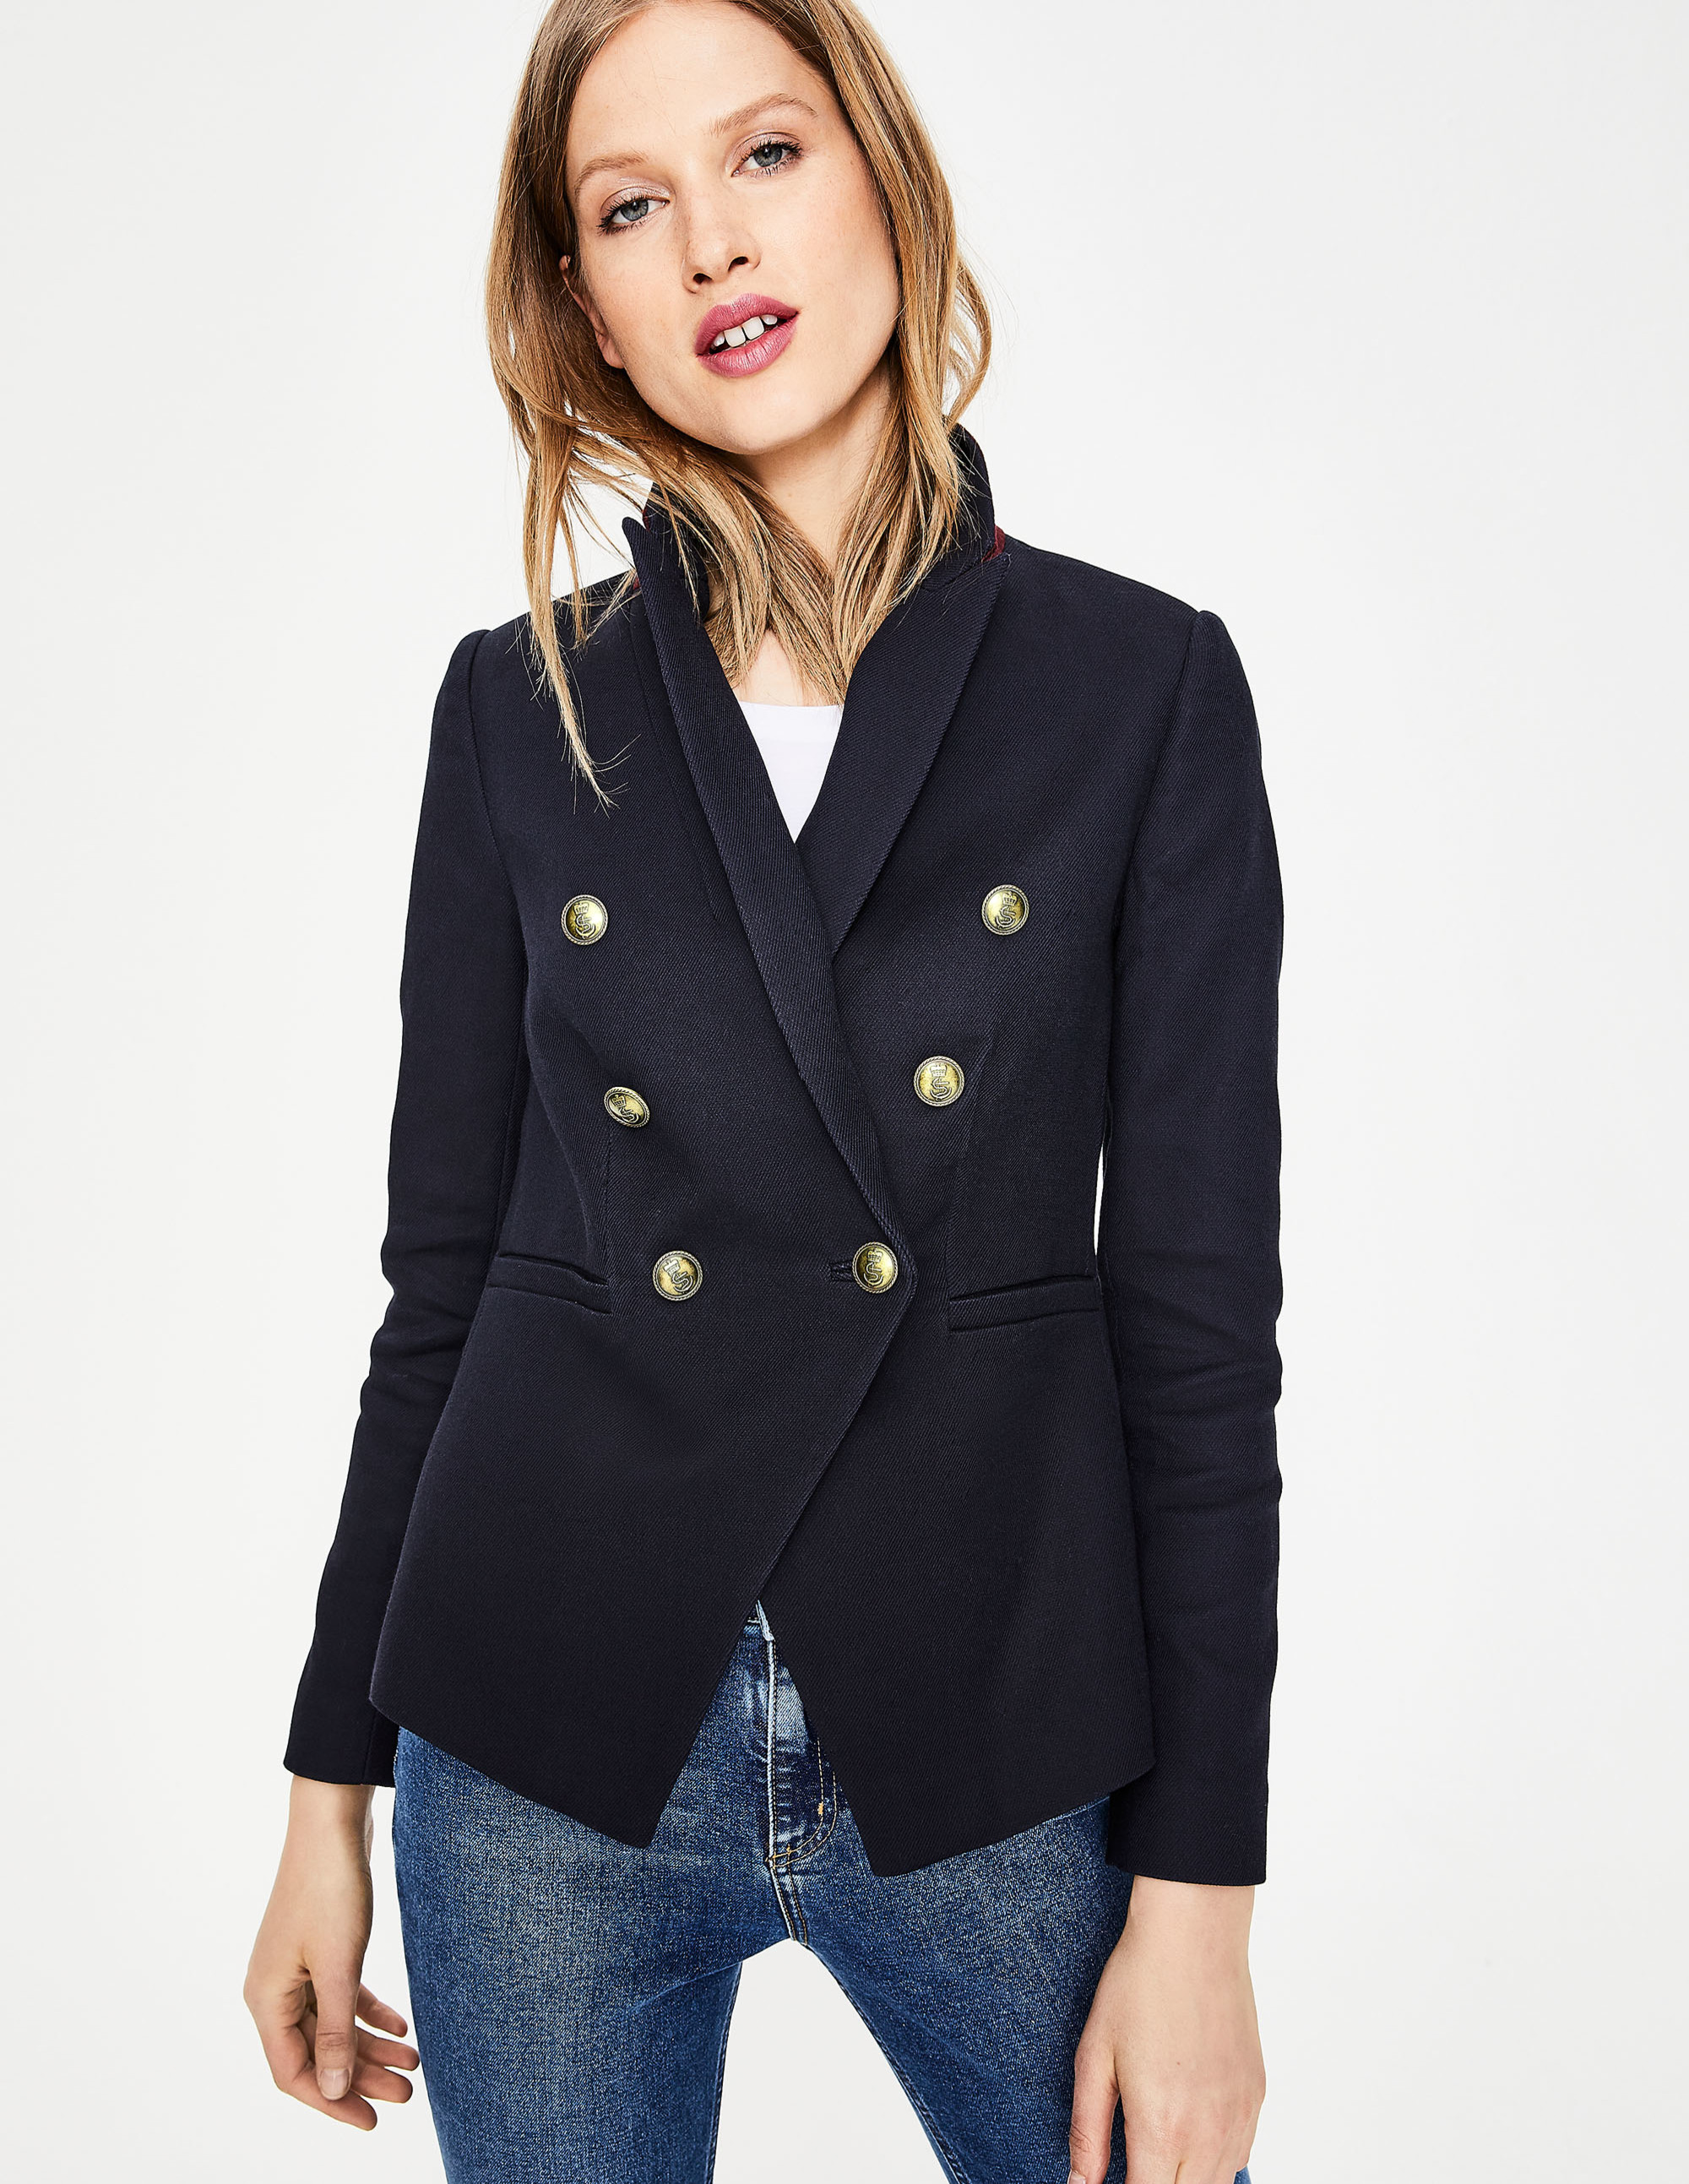 Navy Blue Blazer with Gold Buttons